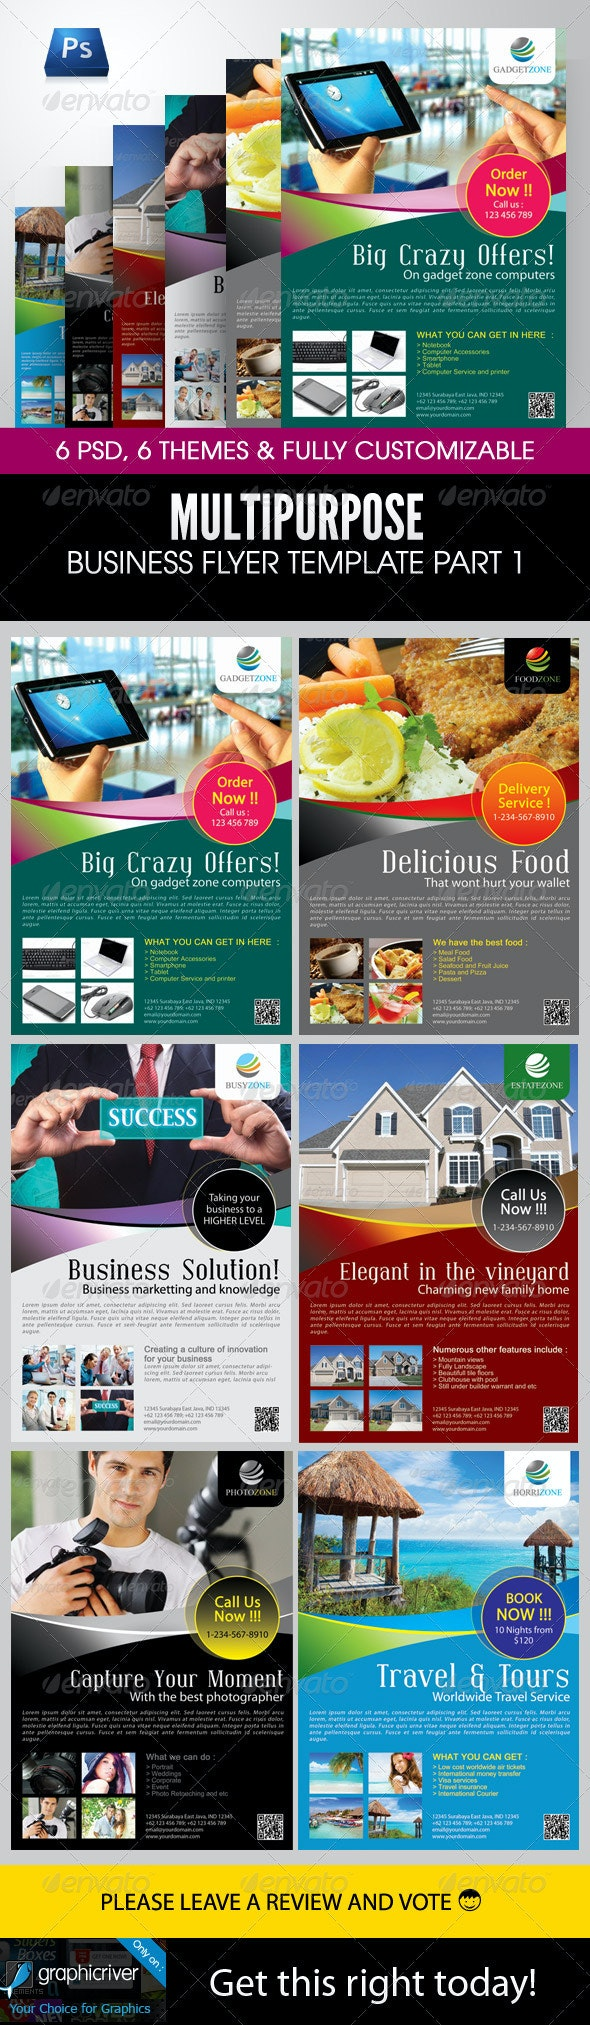 Multipurpose Business Flyer Template Part 1 - Corporate Flyers